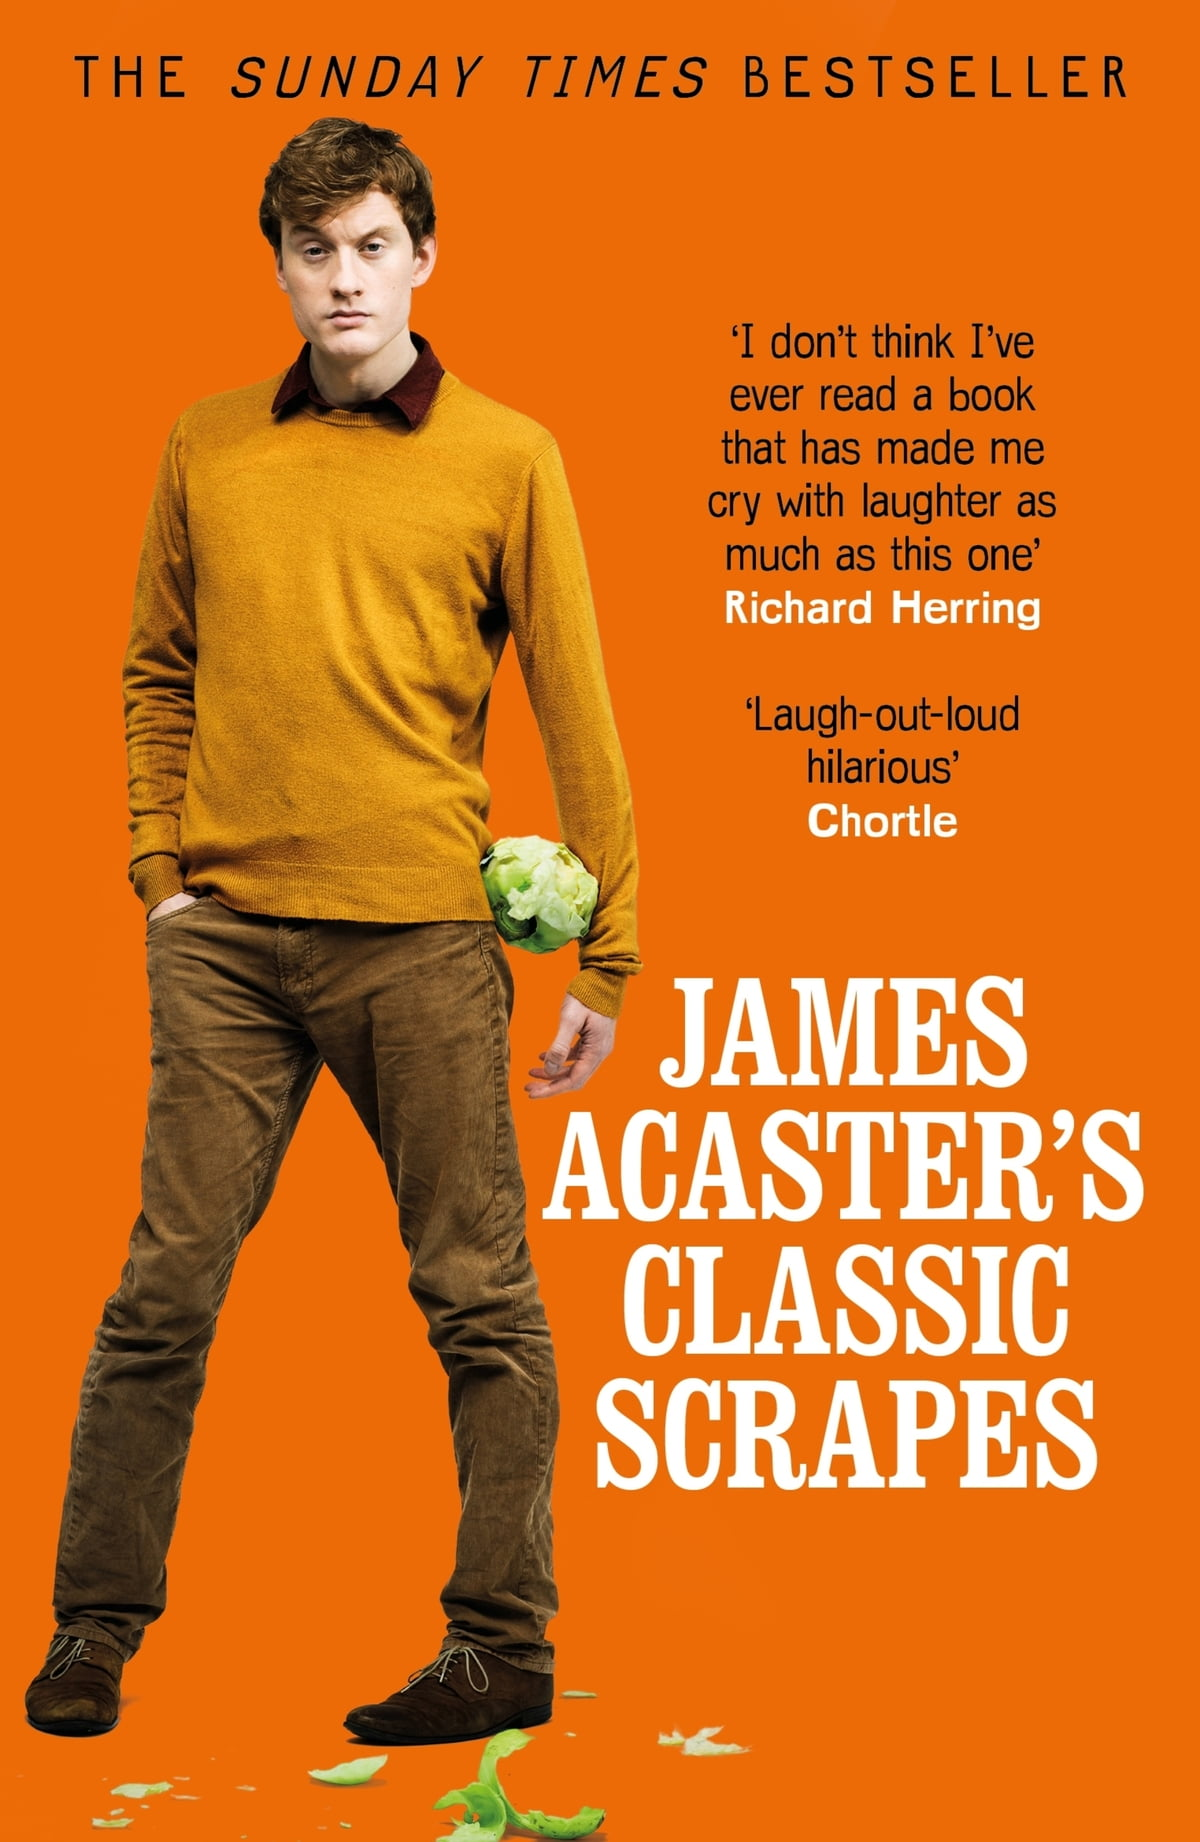 James Acaster's Classic Scrapes - The Hilarious Sunday Times Bestseller  eBook by James Acaster - 9781472247209 | Rakuten Kobo United States